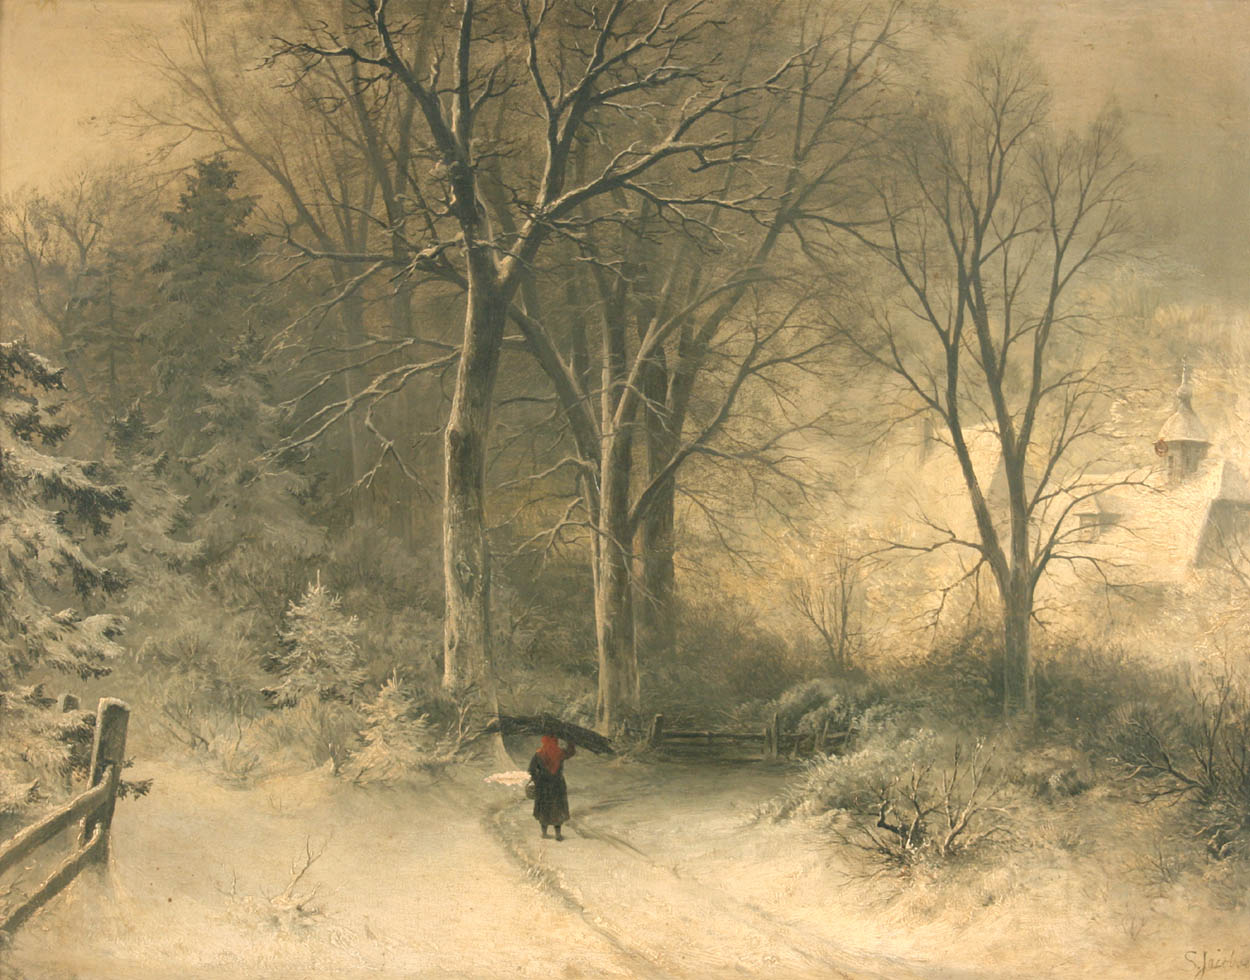 jacobsen 1833 1912 figure carrying wood within a snowy landscape